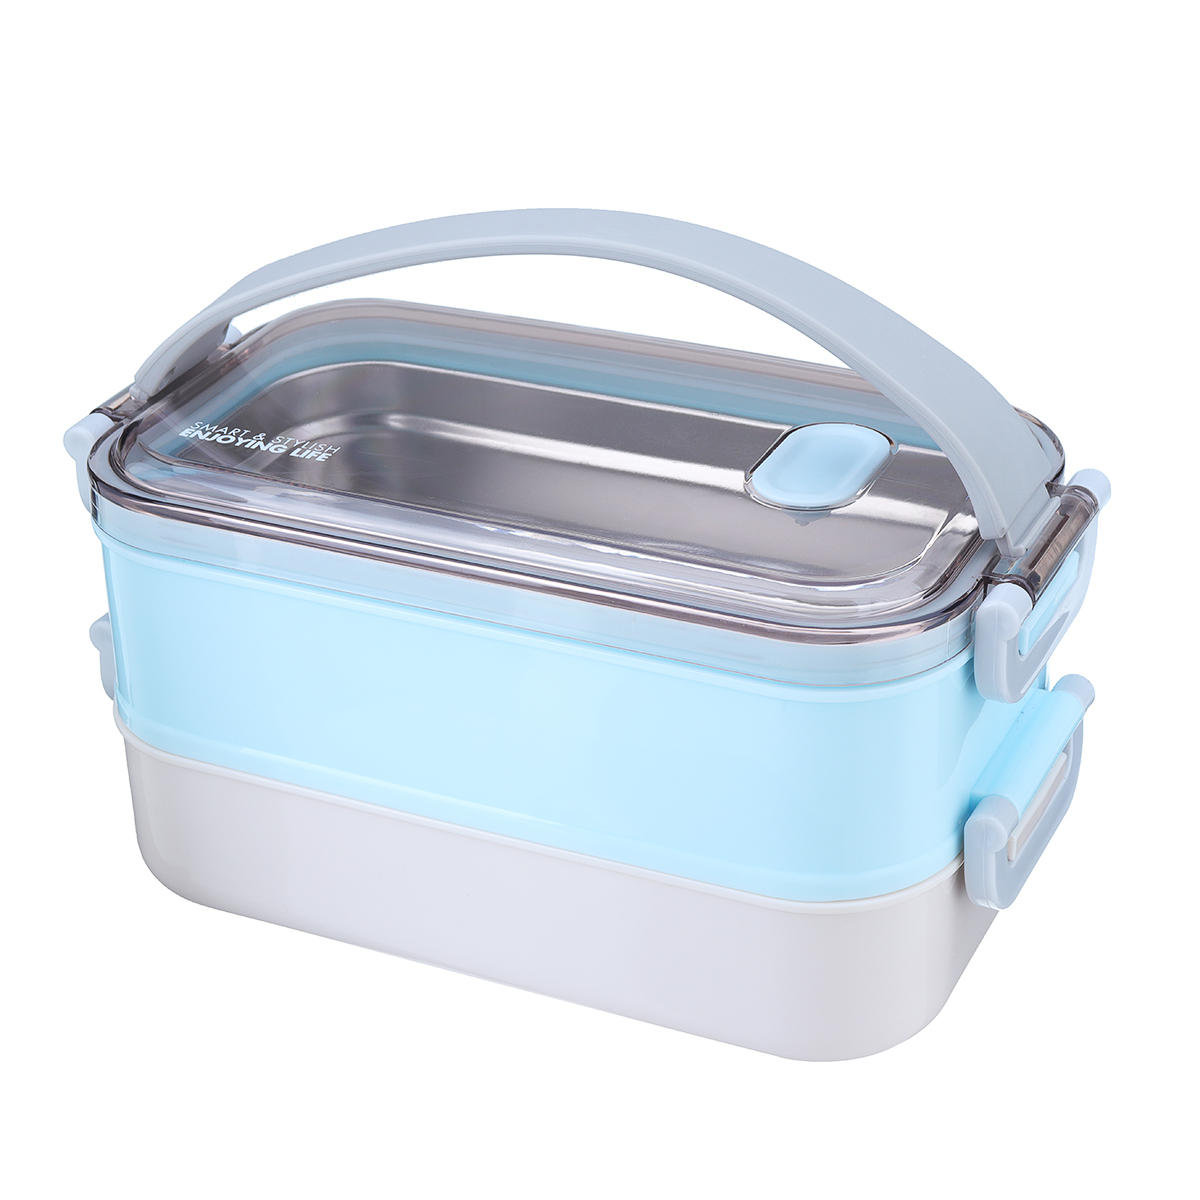 ac4b159bae9 1-2 Layer Stainless Steel Insulated Lunch Box Food Storage Thermal  Container COD